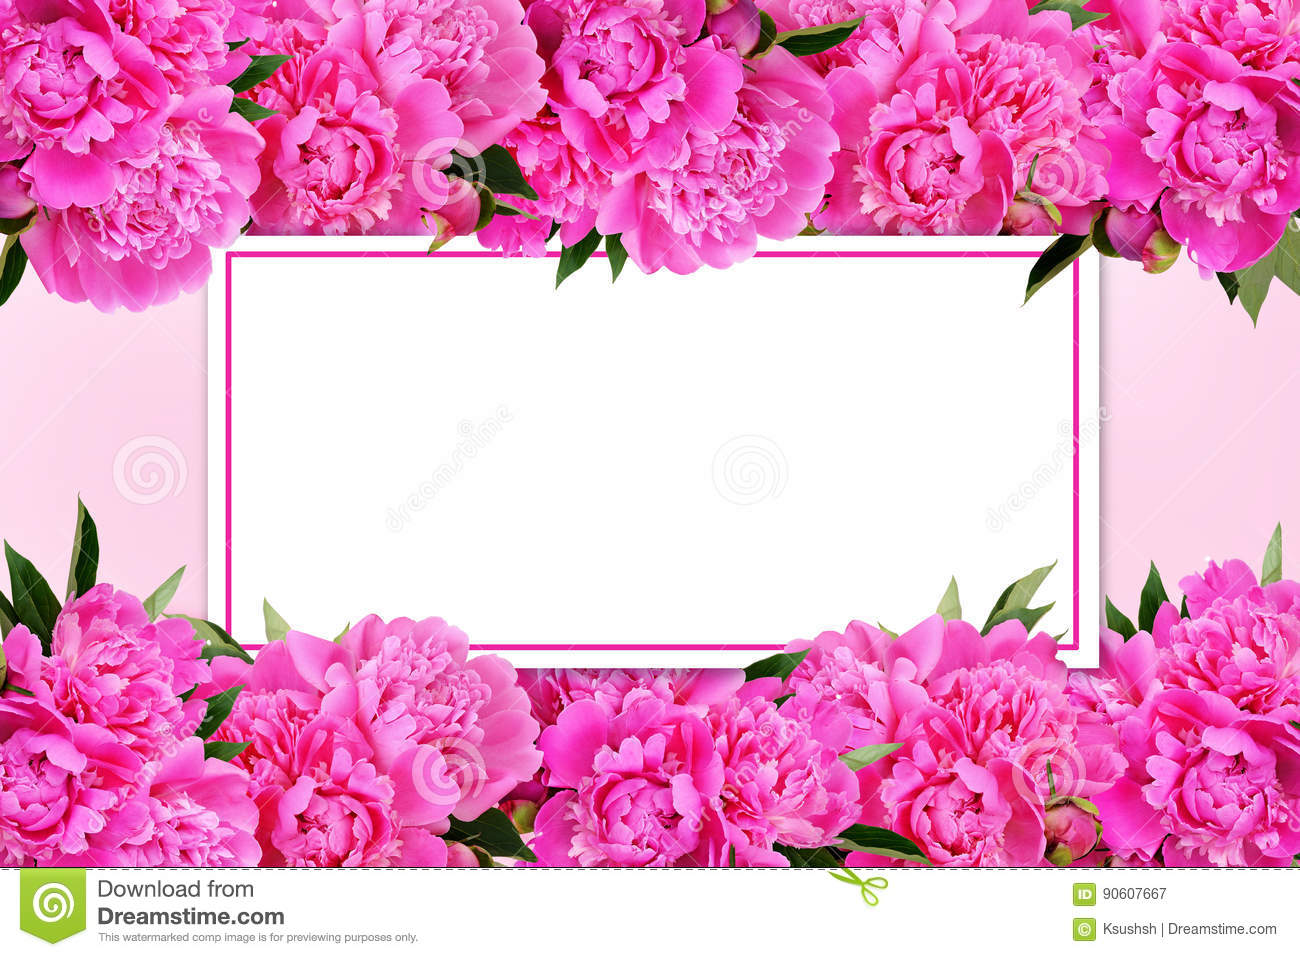 Pink peony flowers borders stock photo image 90607838 pink peony flowers borders and a card royalty free stock photography dhlflorist Images